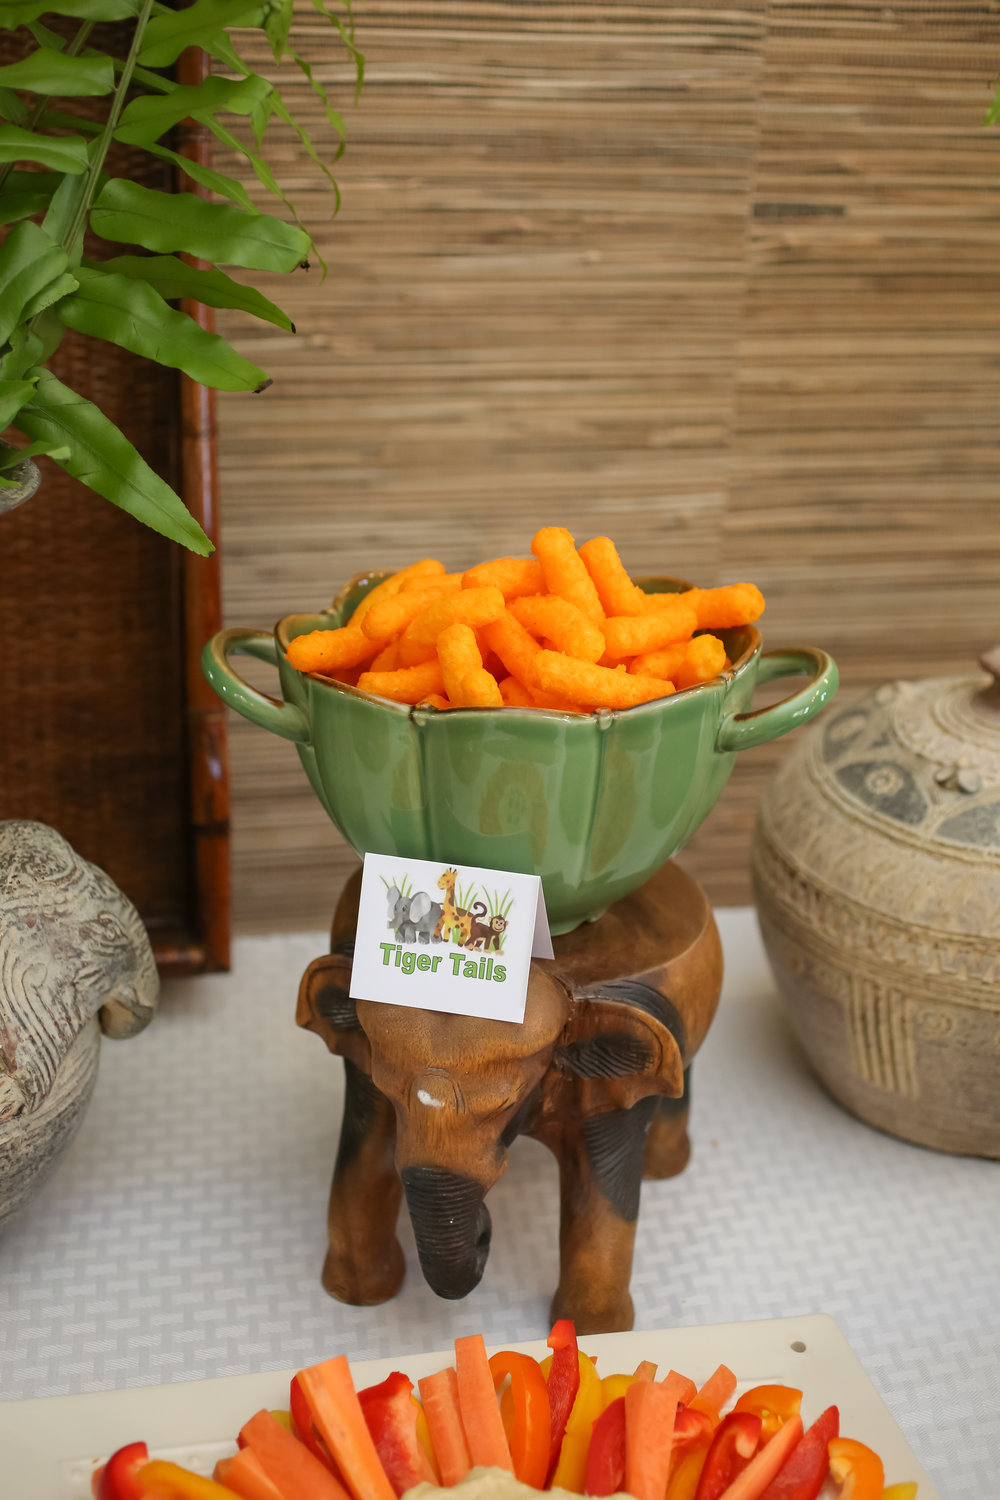 Adorable elements like wooden elephant stands helped complete the jungle themed food station.